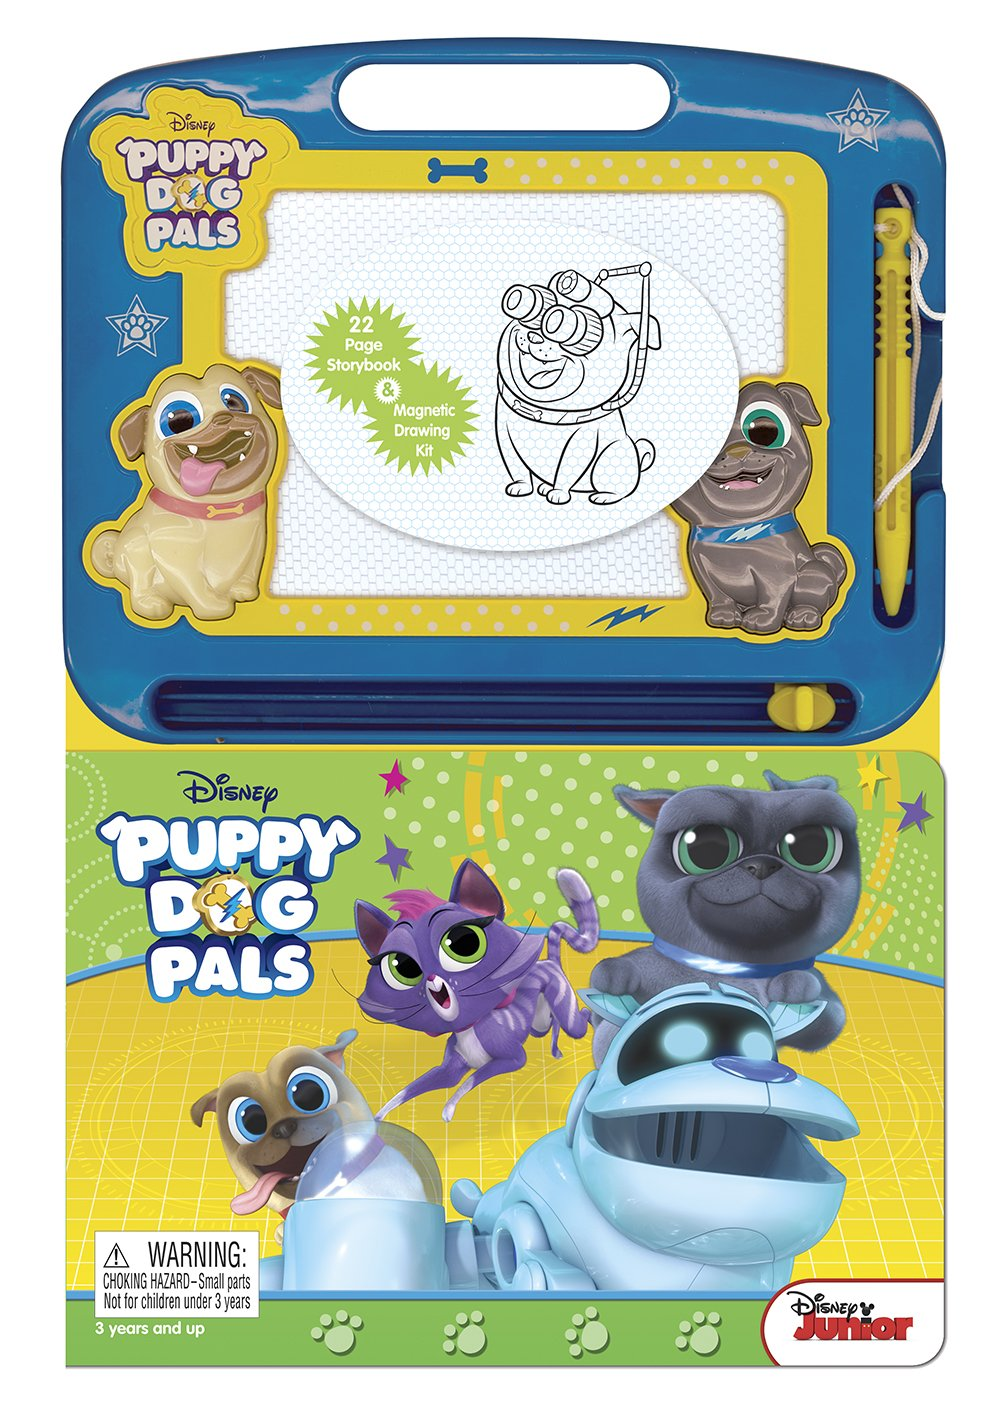 Disney Jr. Puppy Dog Pals Learning Series